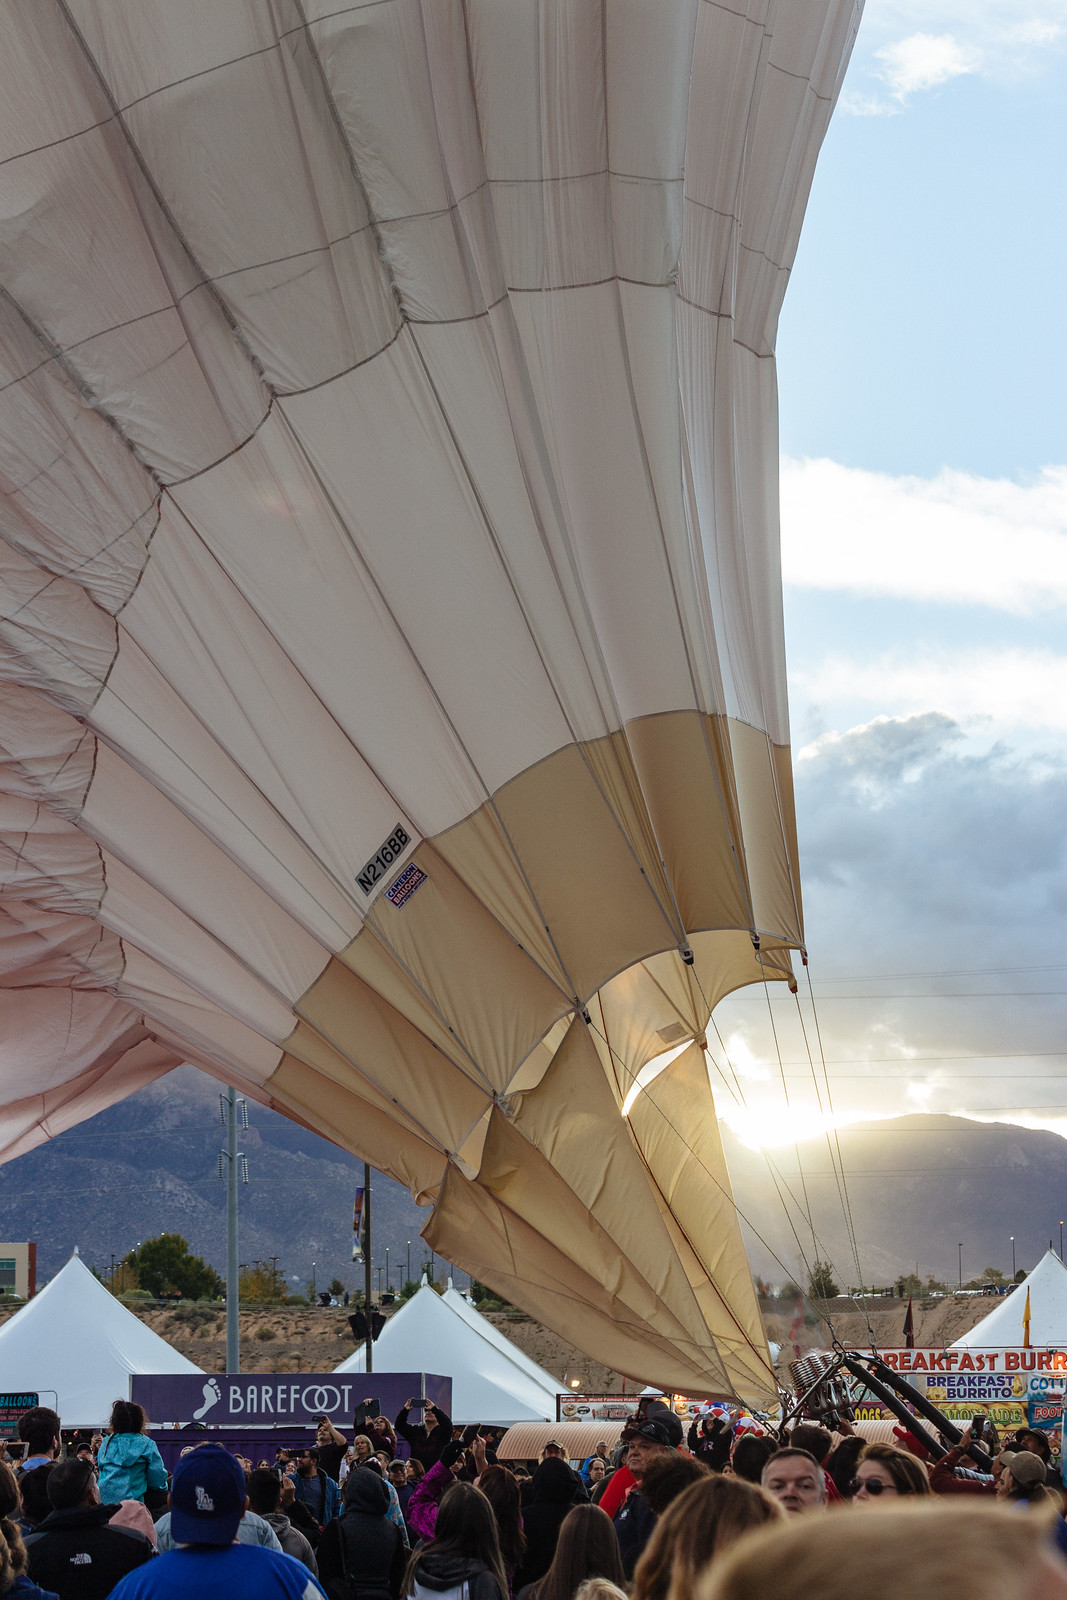 The sun shining over the mountains and on a white half-inflated balloon at the Albuquerque International Balloon Fiesta